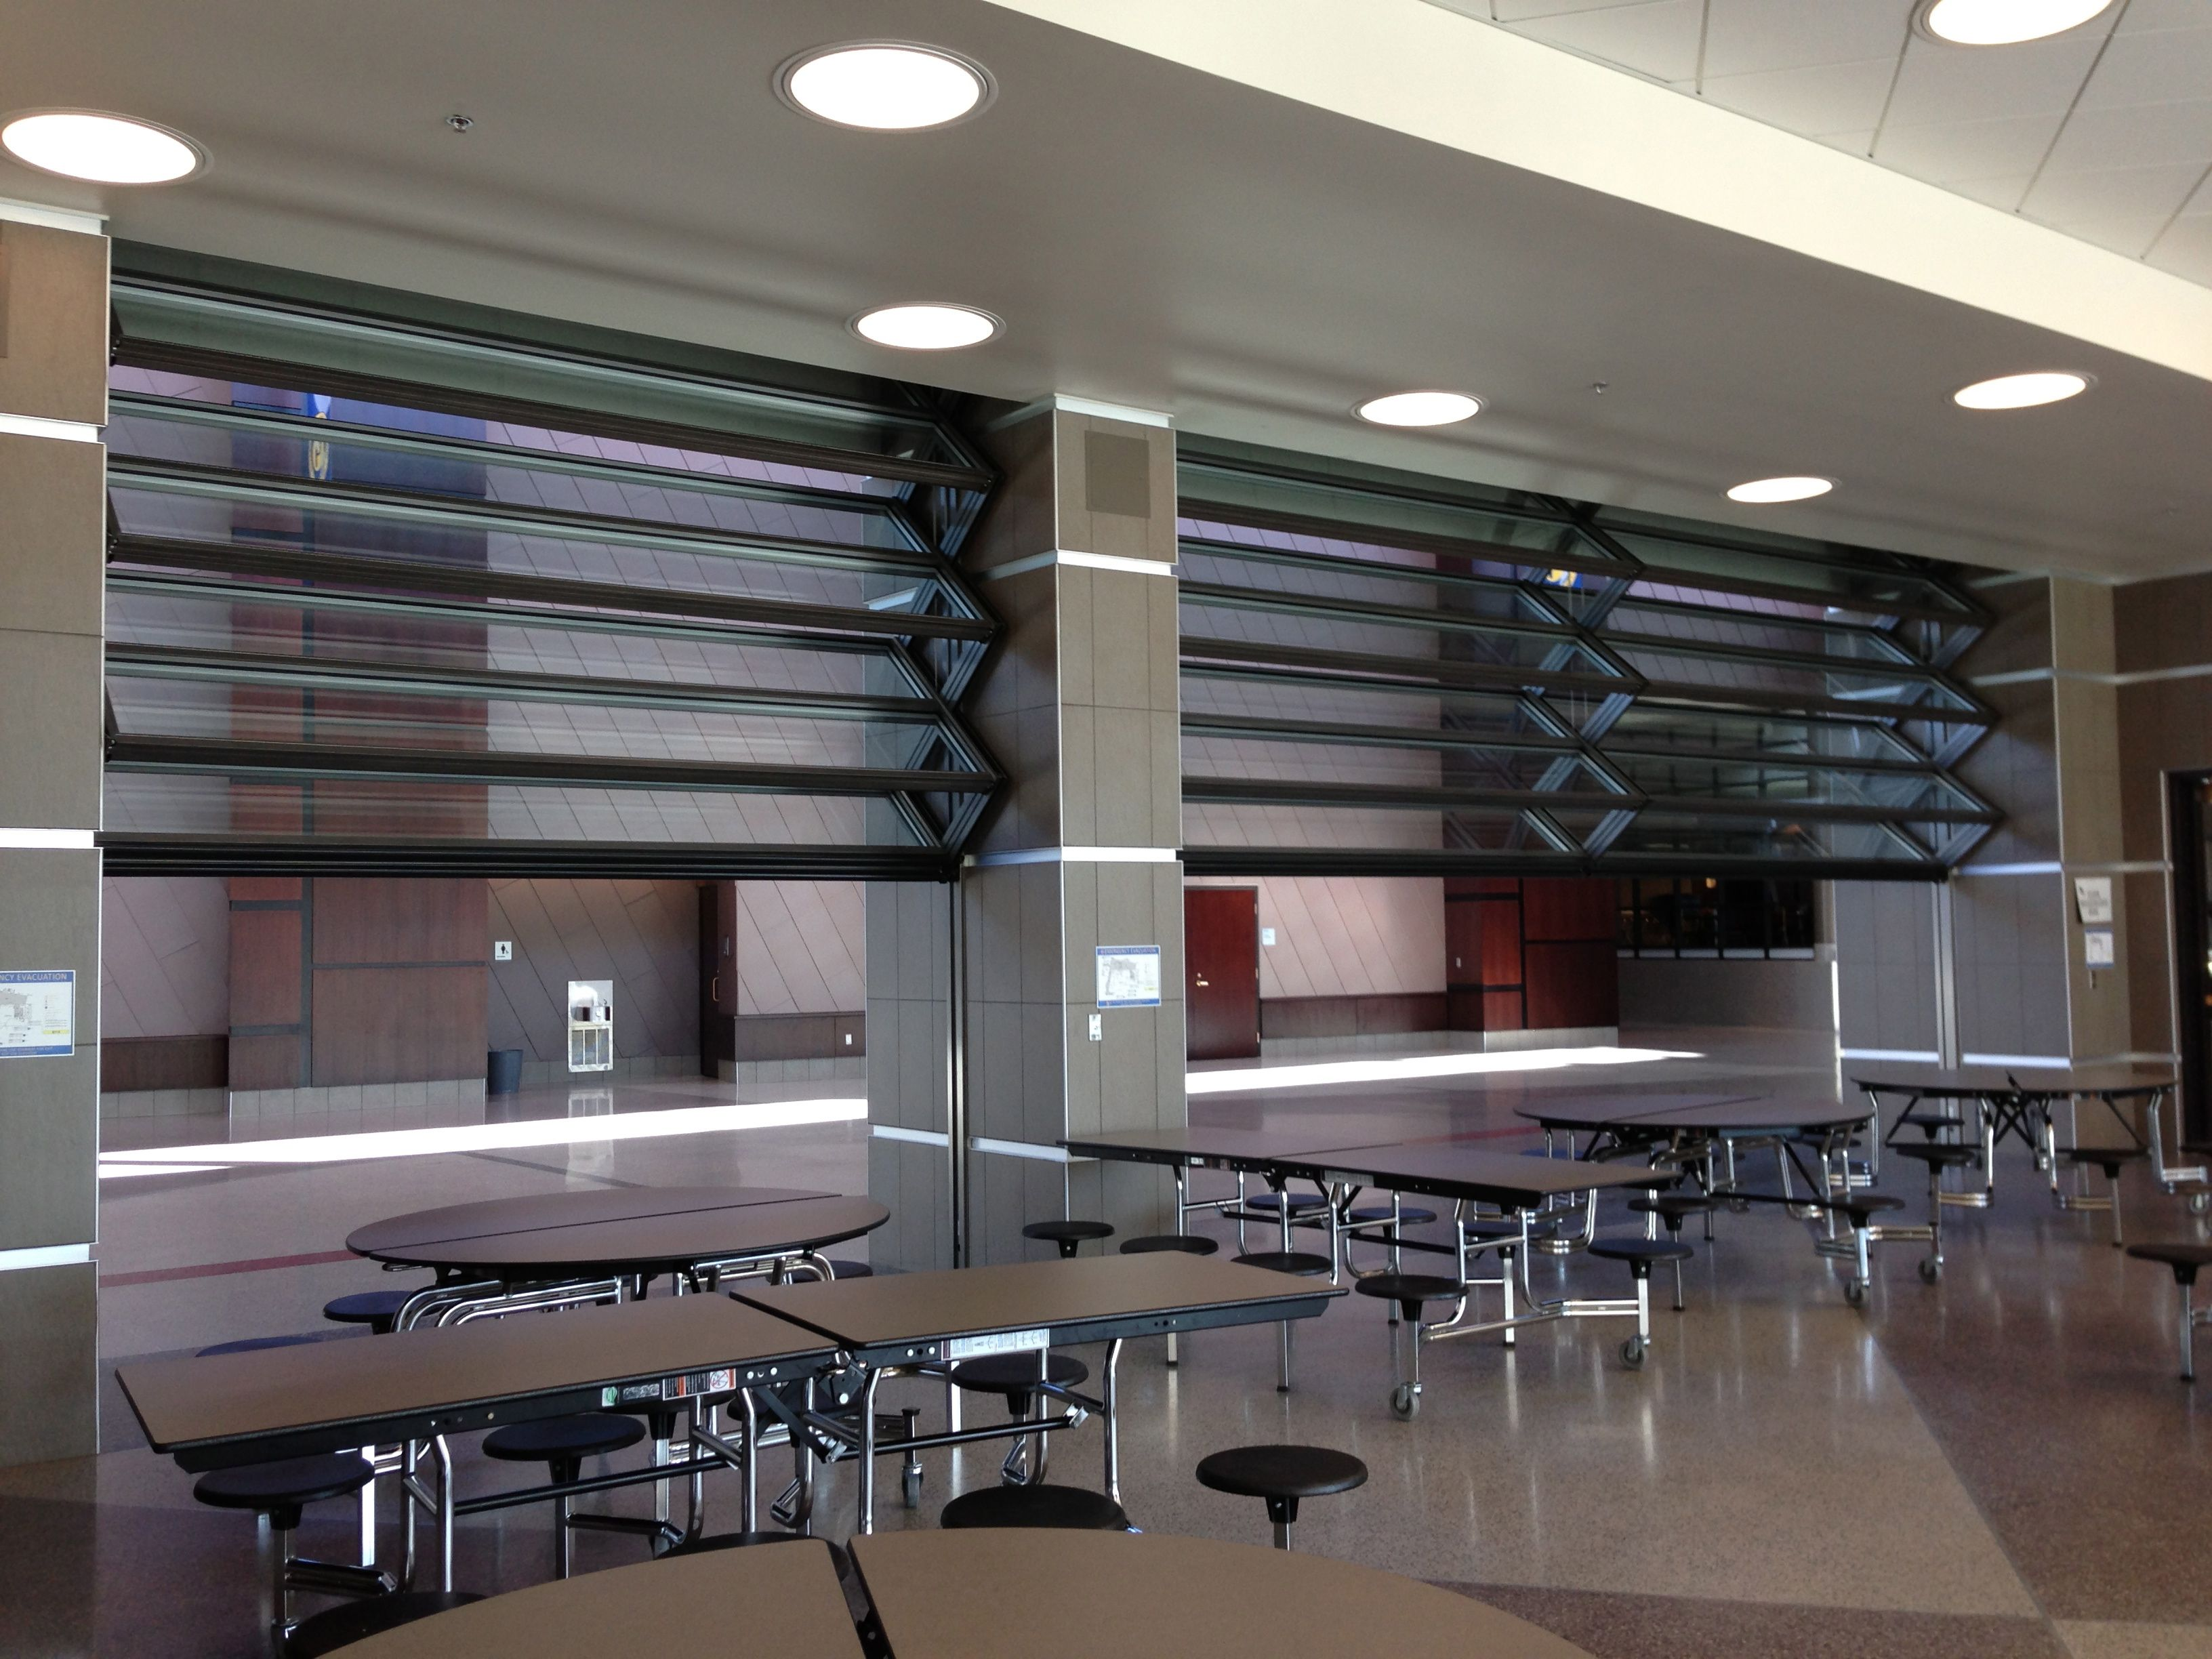 Skyfold Mirage Folding Glass Wall At Putnam Voc Tech Hs In